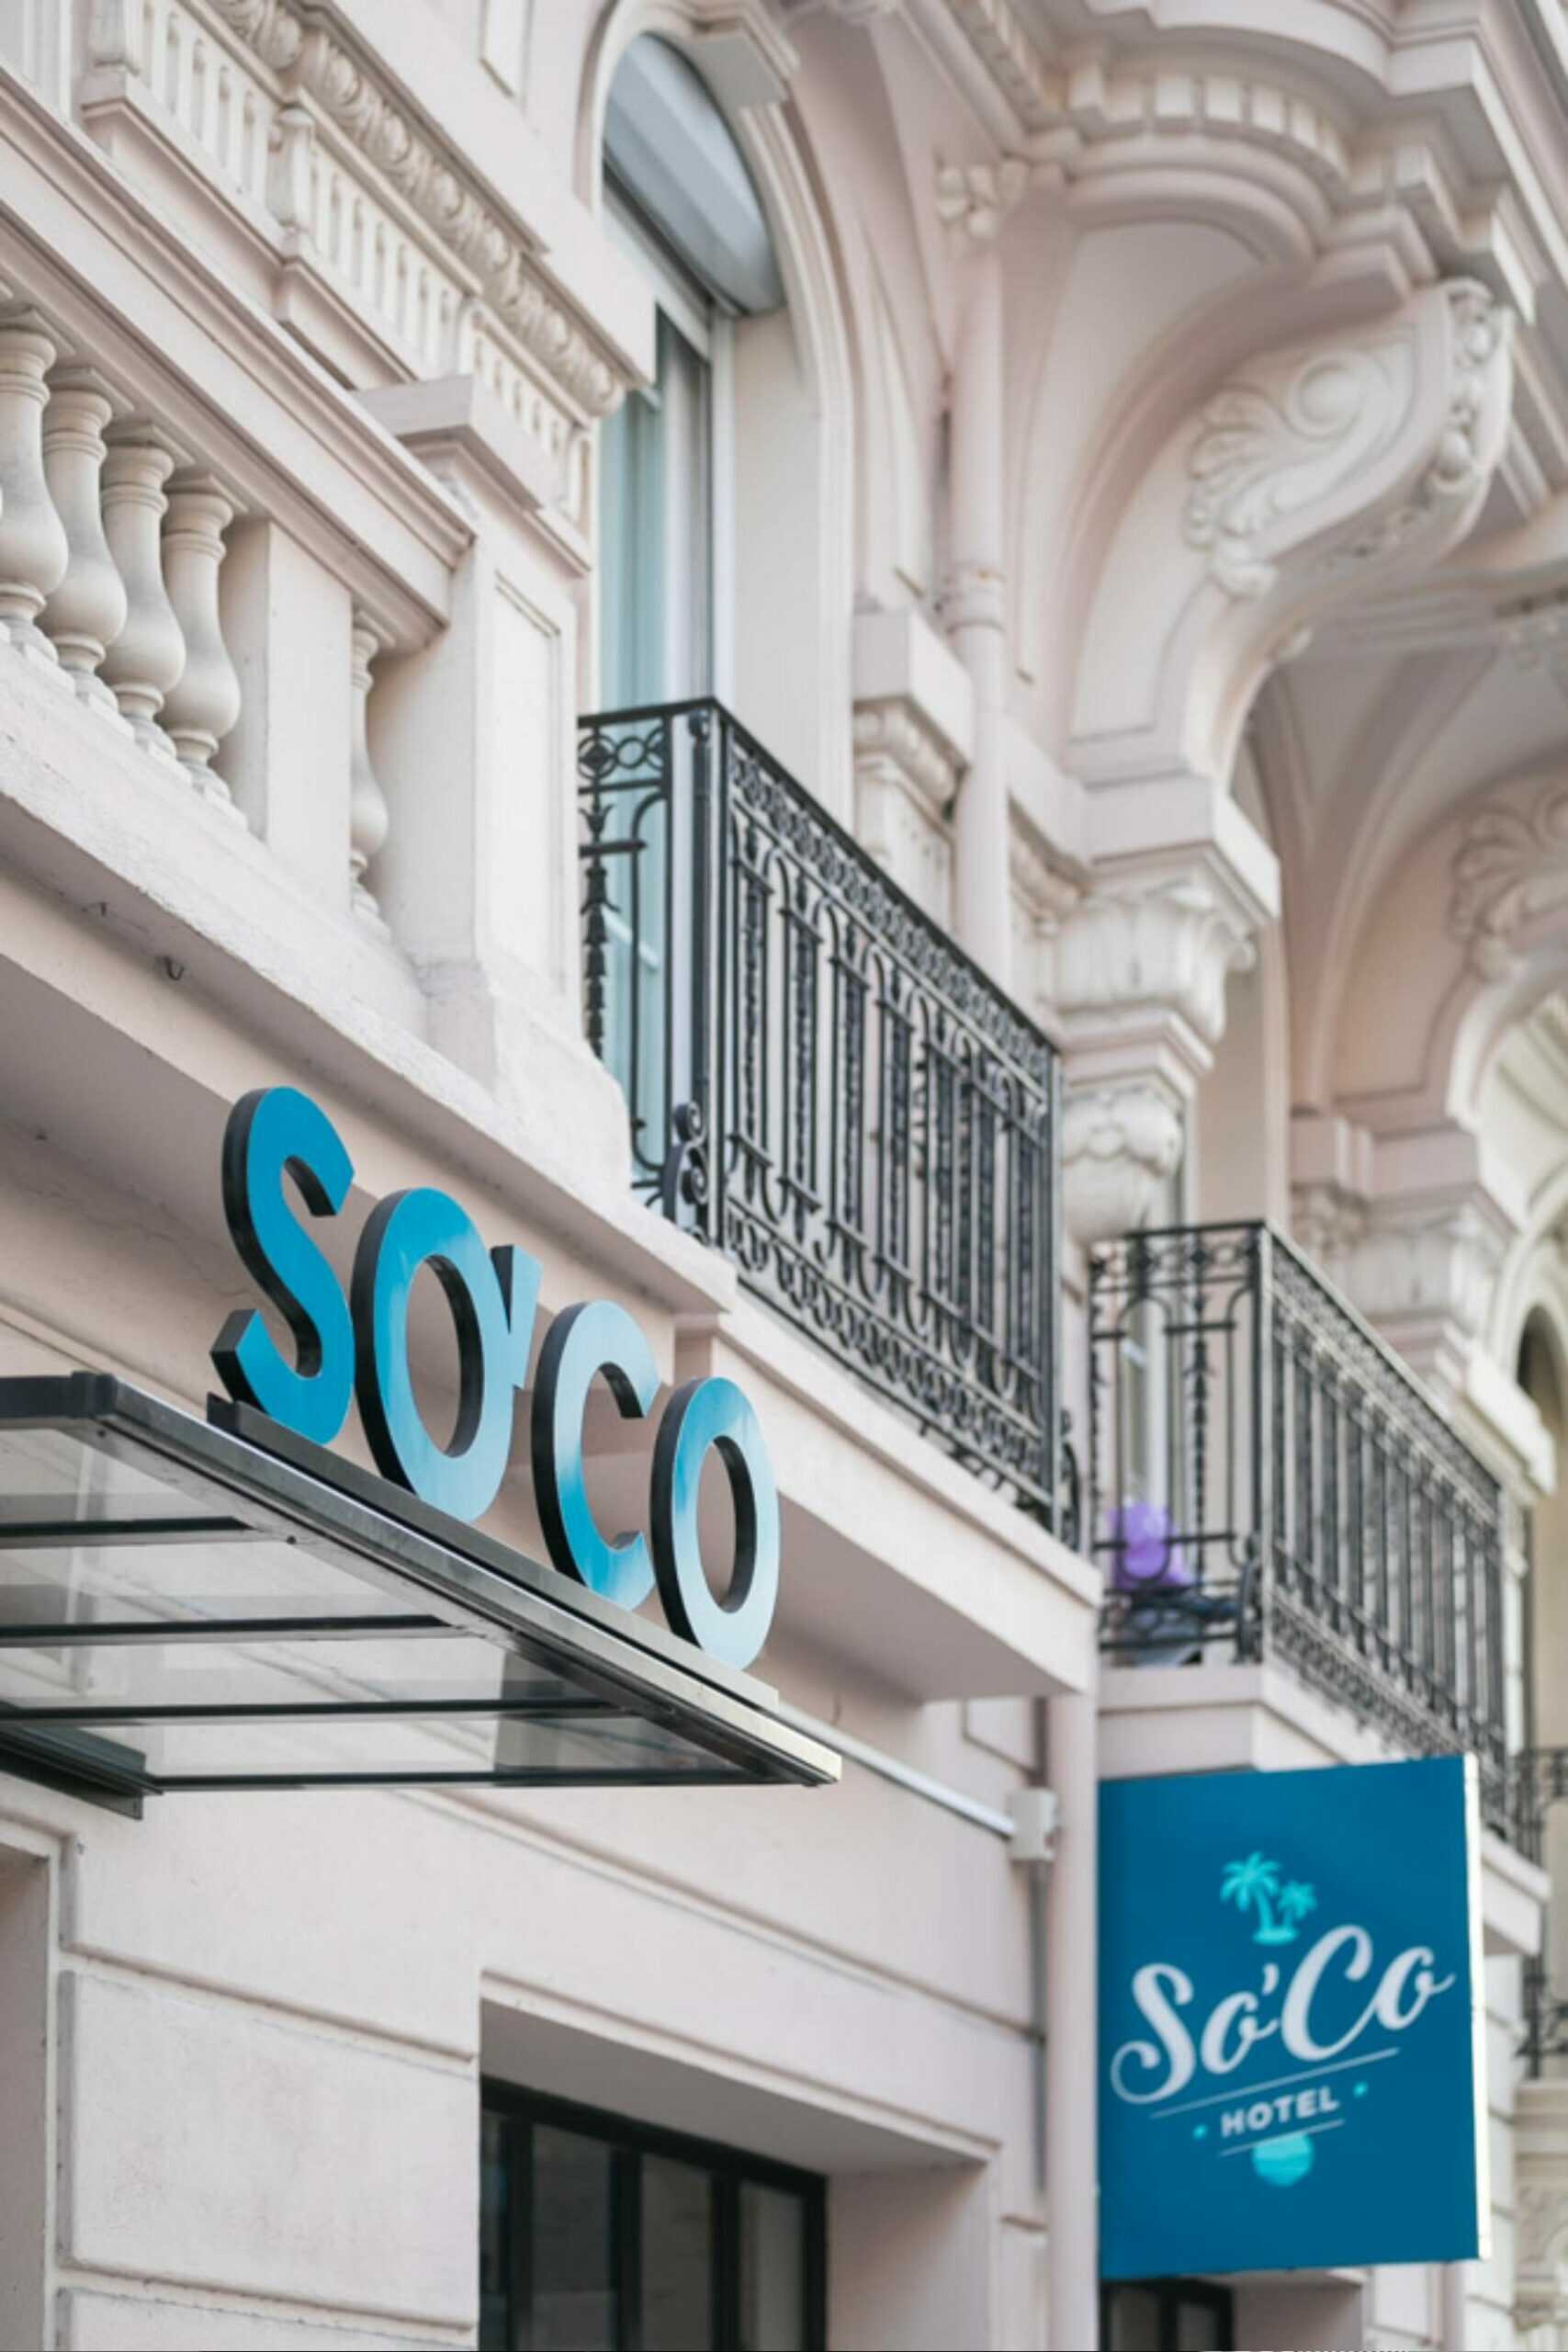 facade_hotel_soco_by_happyculture-scaled.jpg